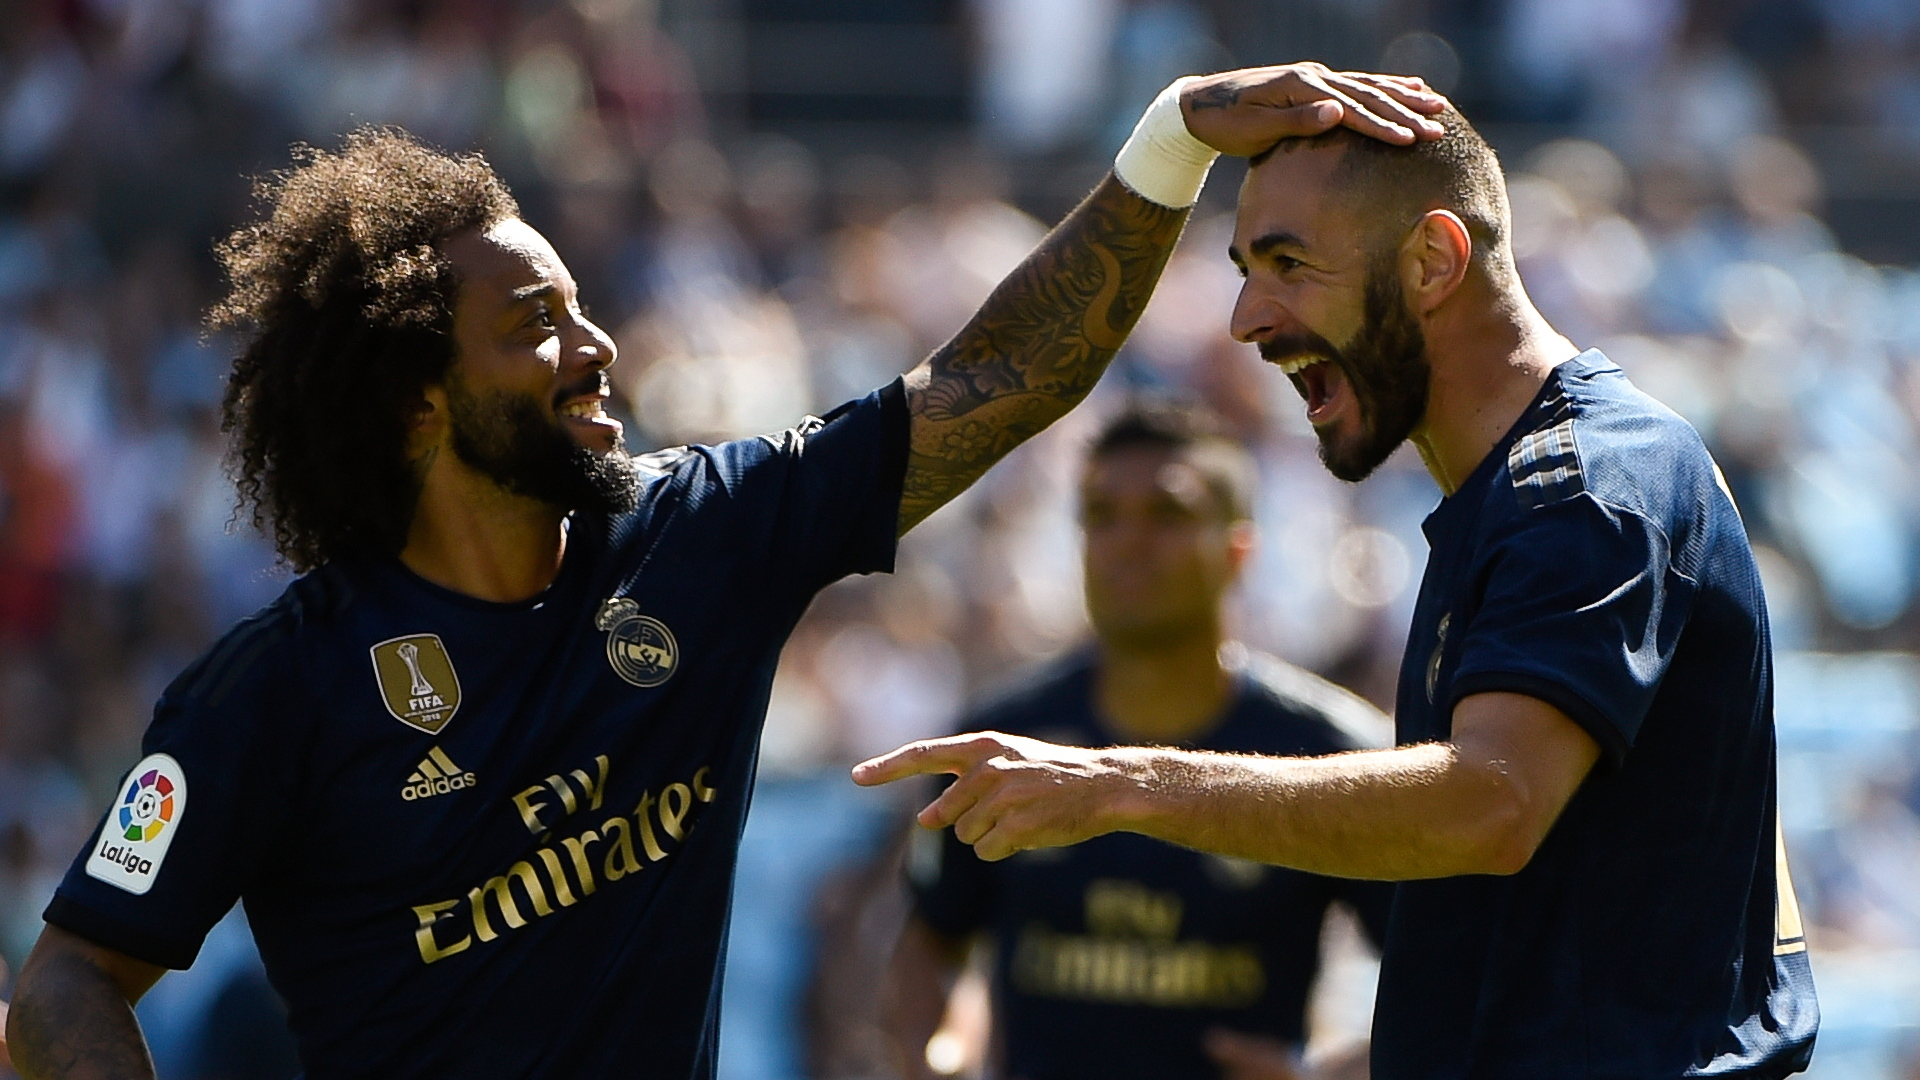 'Scary' Benzema one of the most underrated players in the world, says PSG boss Tuchel